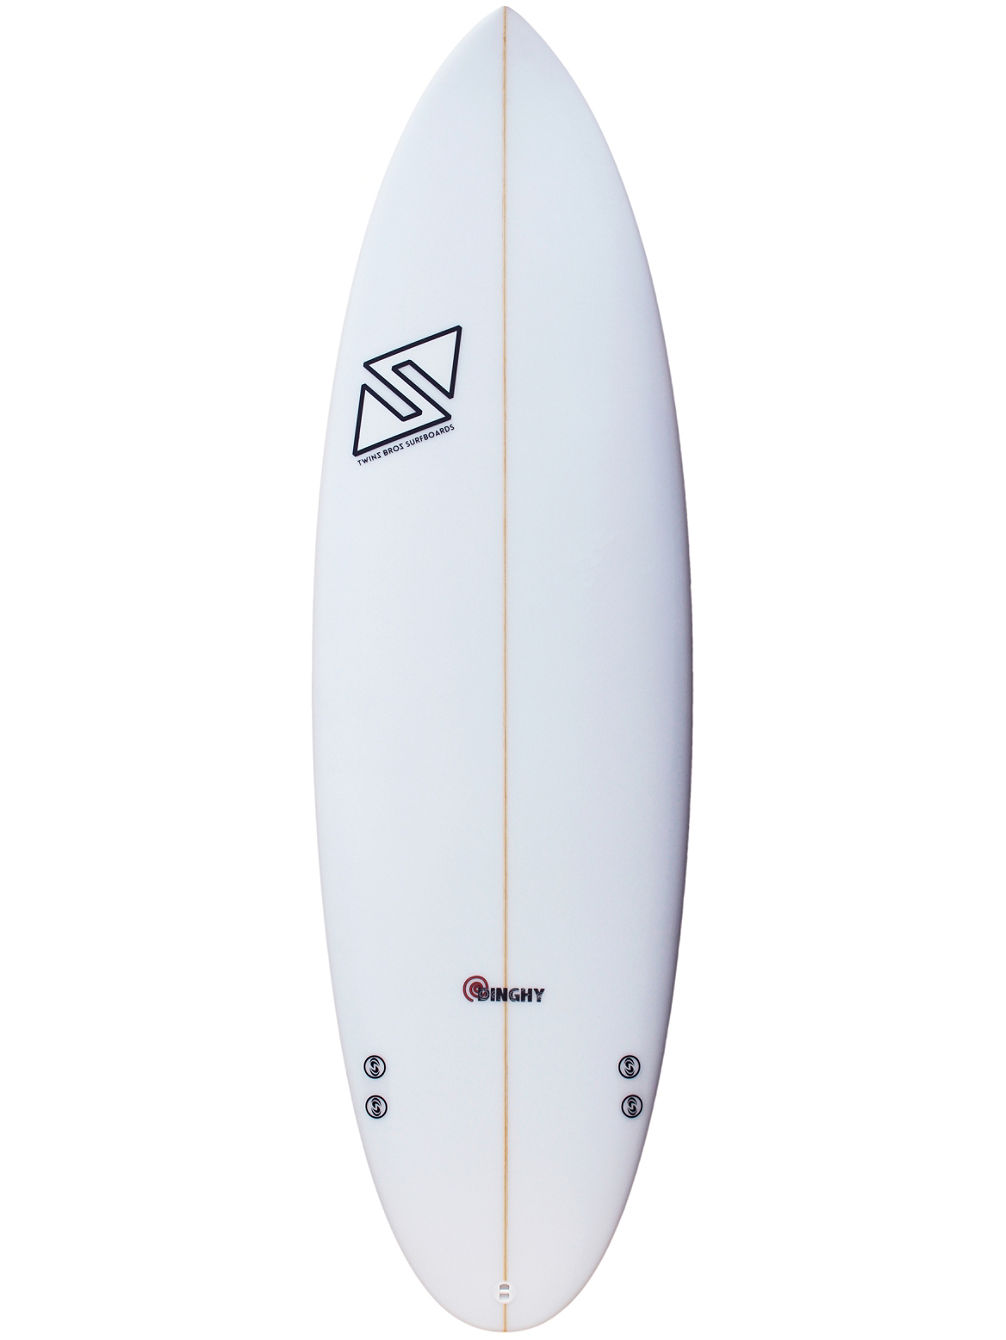 Dinghy FCS 5'3 Surfboard